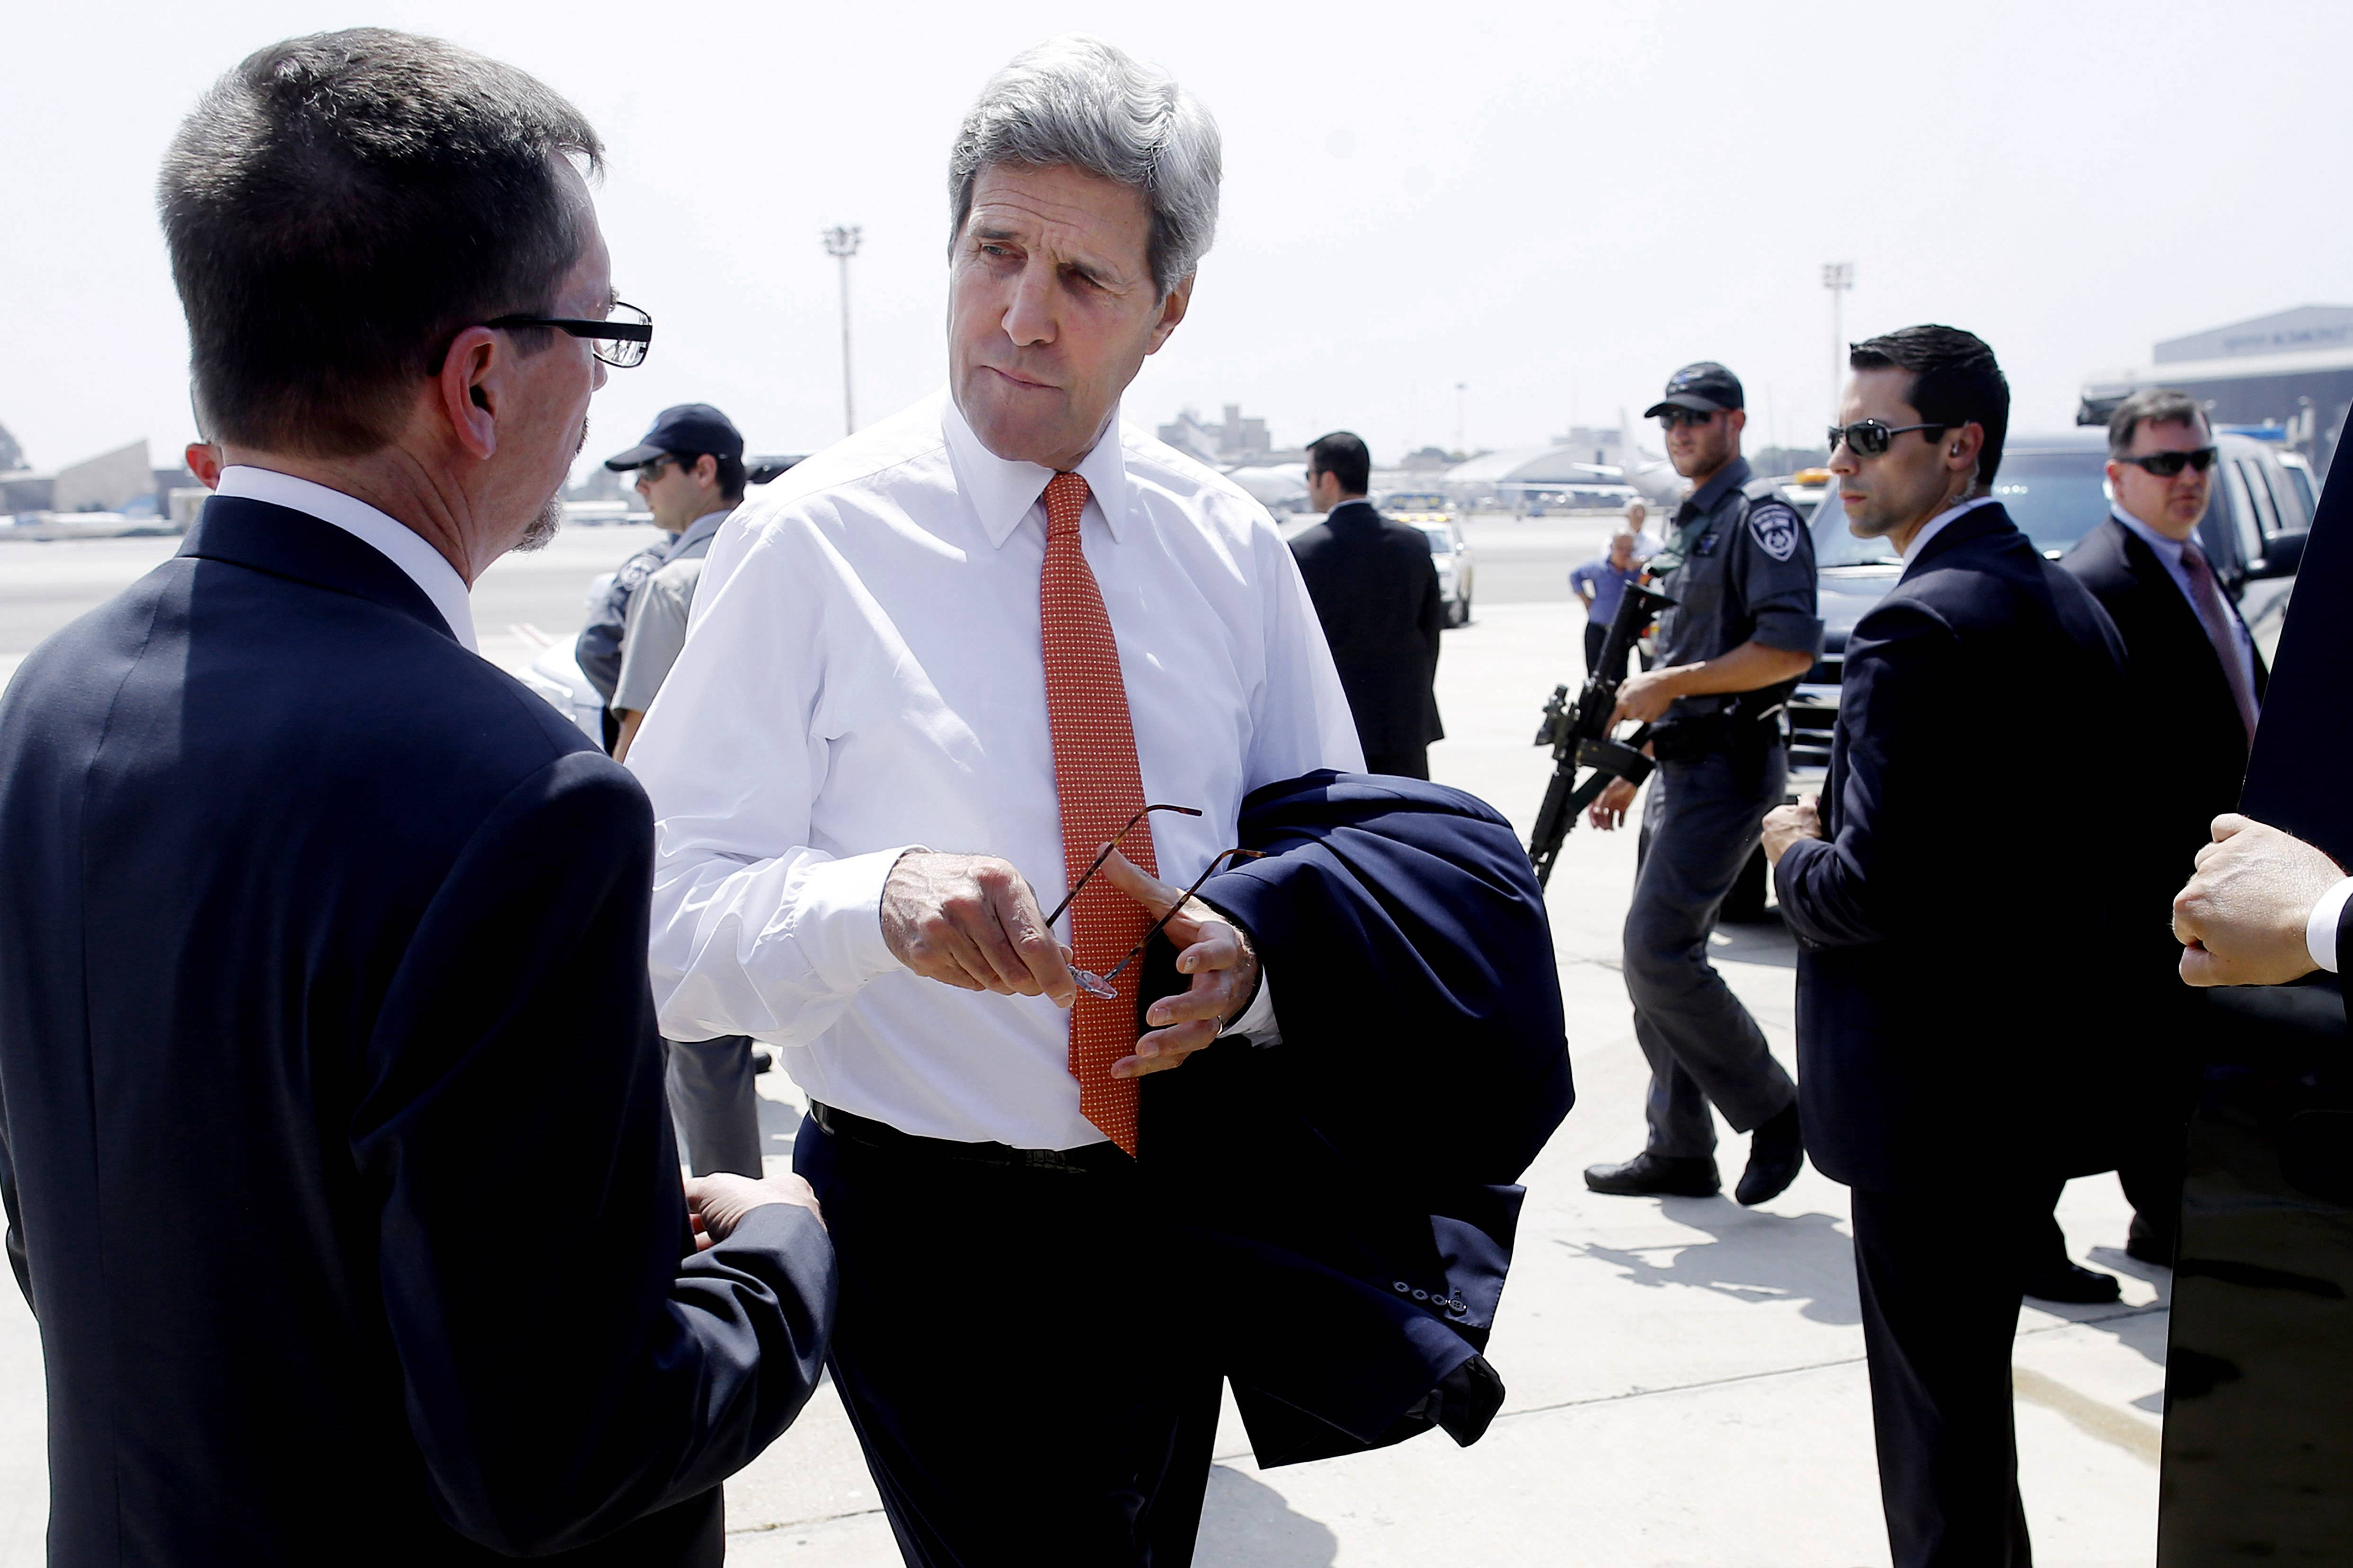 Secretary of State John Kerry, center, talks with U.S. Embassy Deputy Chief of Mission Bill Grant after his arrival in Tel Aviv, Israel, Wednesday. Kerry was to meet with U.N. Secretary-General Ban Ki-moon, Israeli Prime Minister Benjamin Netanyahu and Palestinian Authority President Mahmoud Abbas as efforts for a cease-fire between Hamas and Israel continued.